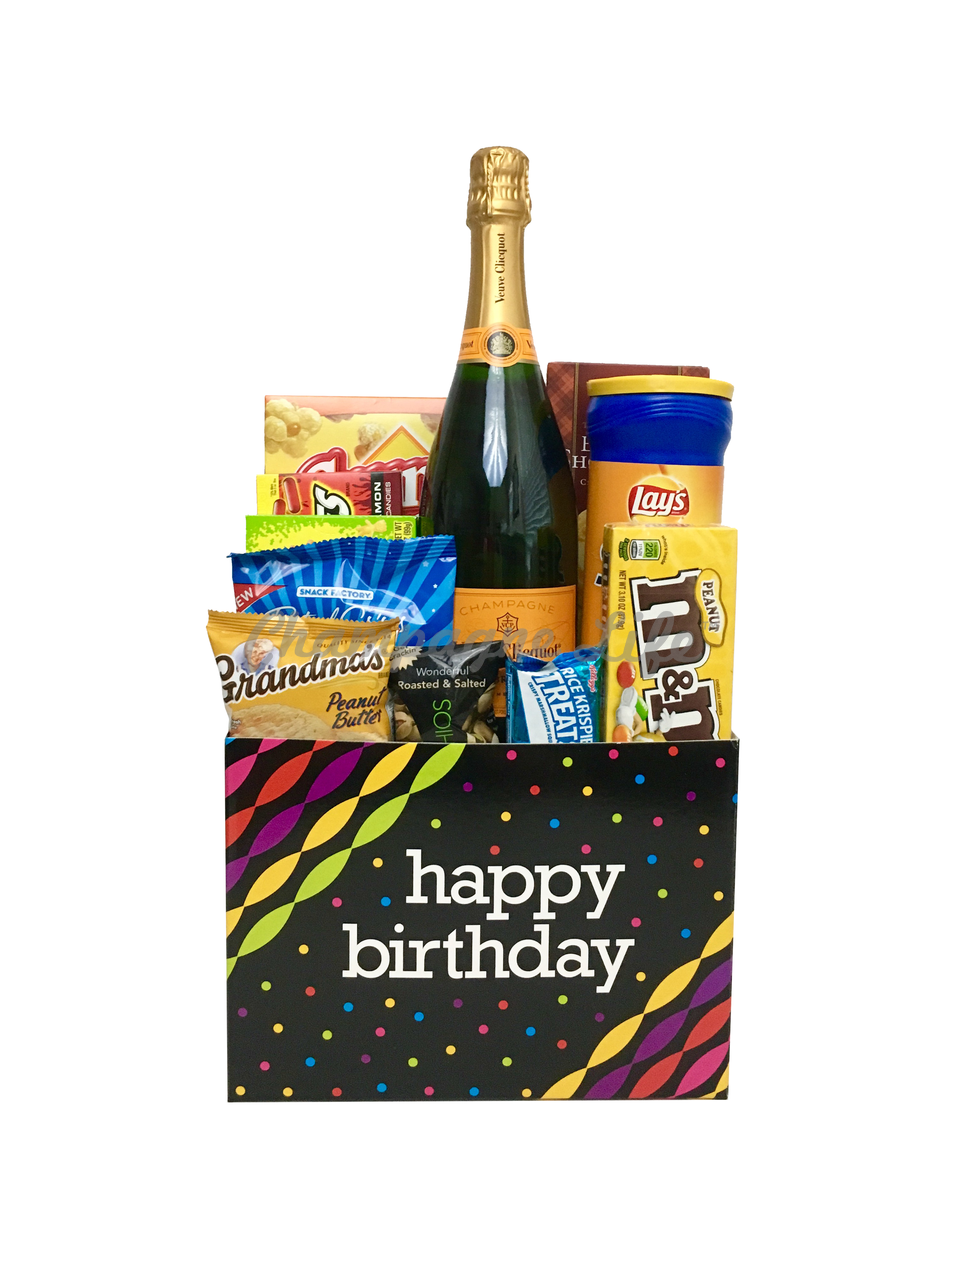 Veuve Clicquot Birthday Gift Basket